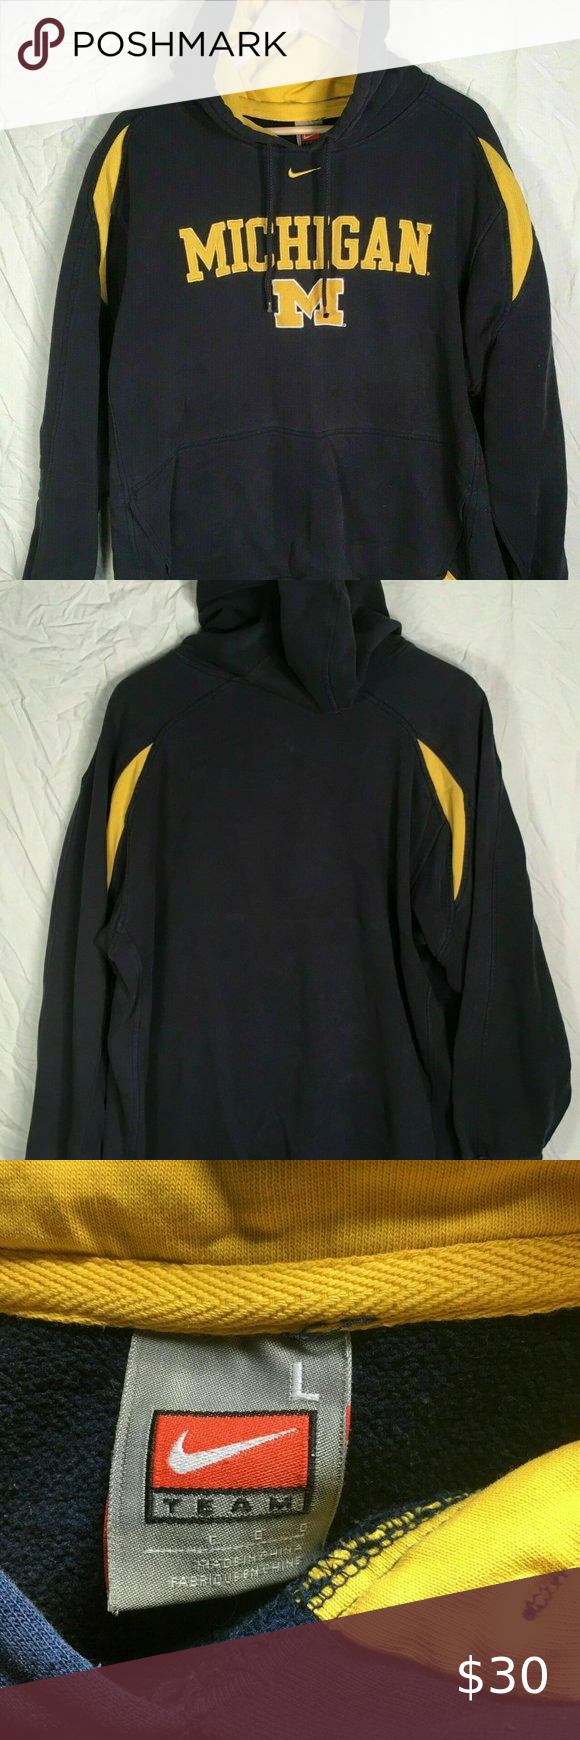 Team Nike Michigan Wolverines Hoodie Large Pre Owned Excellent Condition Size Large Smoke Free Home Team Nike Shir Sweatshirt Shirt Sweatshirts Hoodie Hoodies [ 1740 x 580 Pixel ]